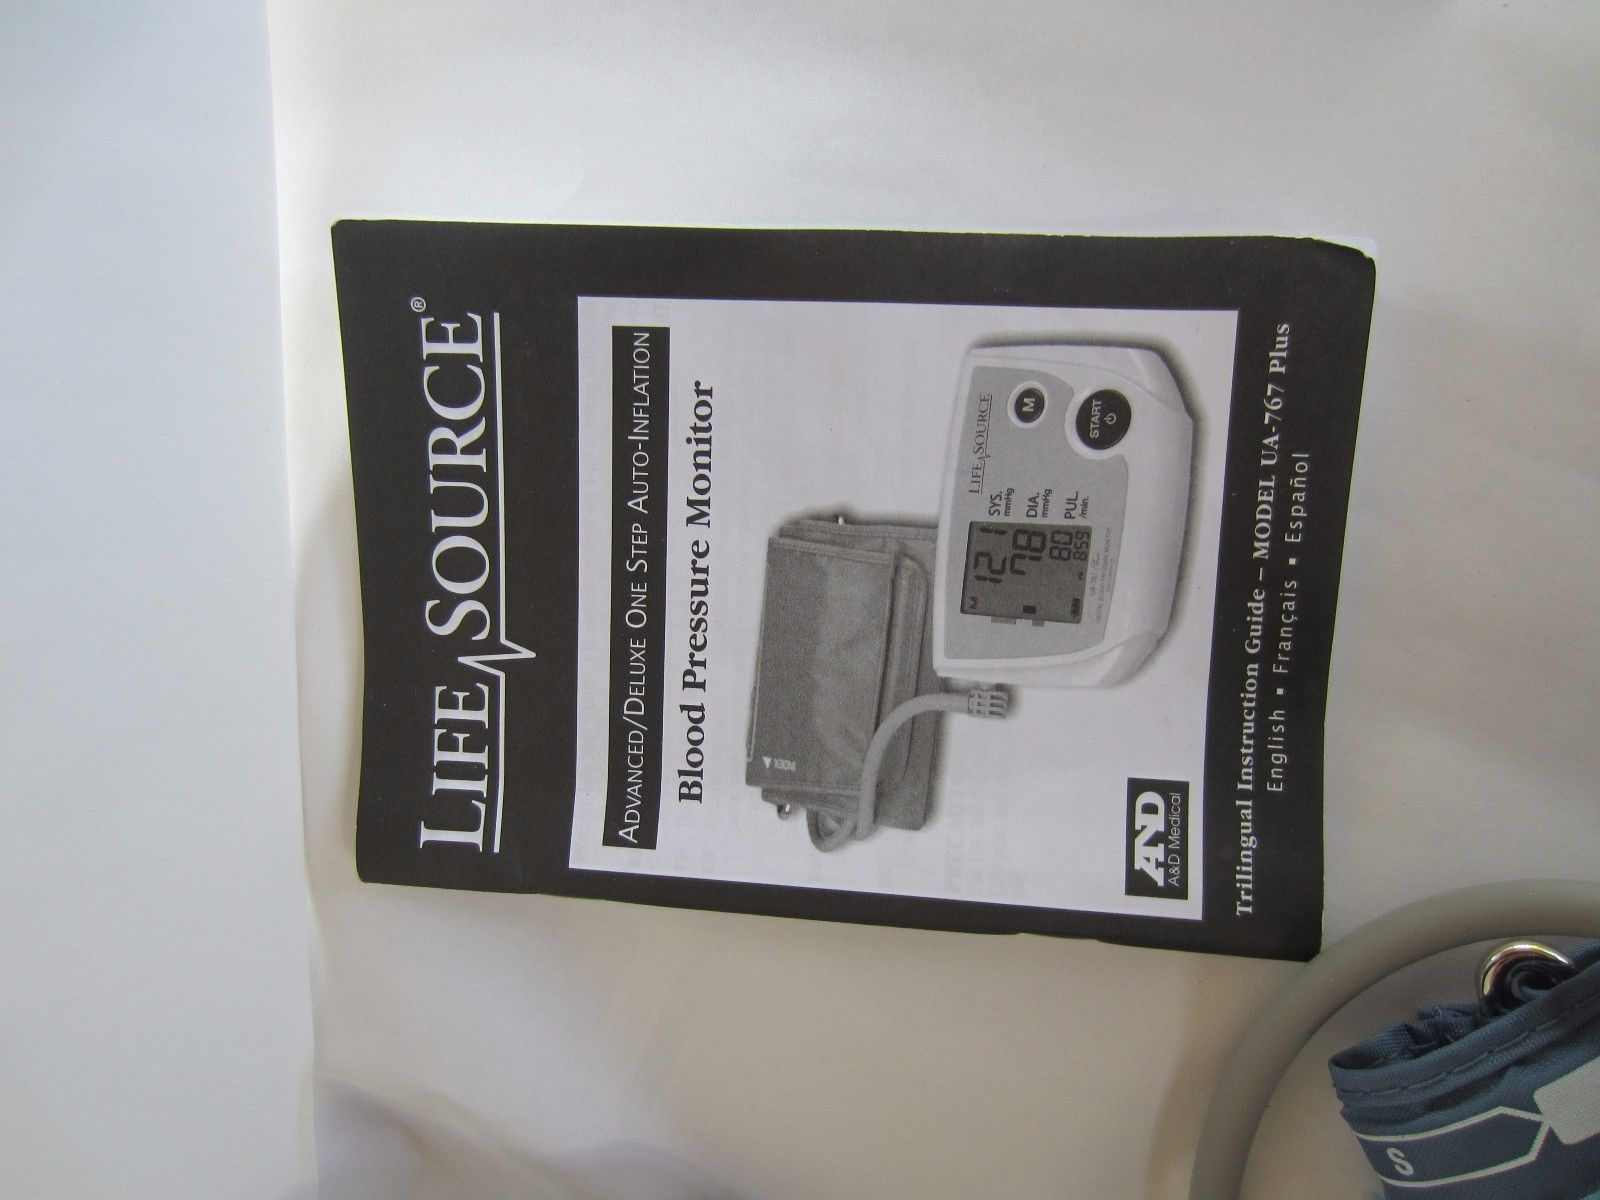 lifesource ua 767 plus instruction manual